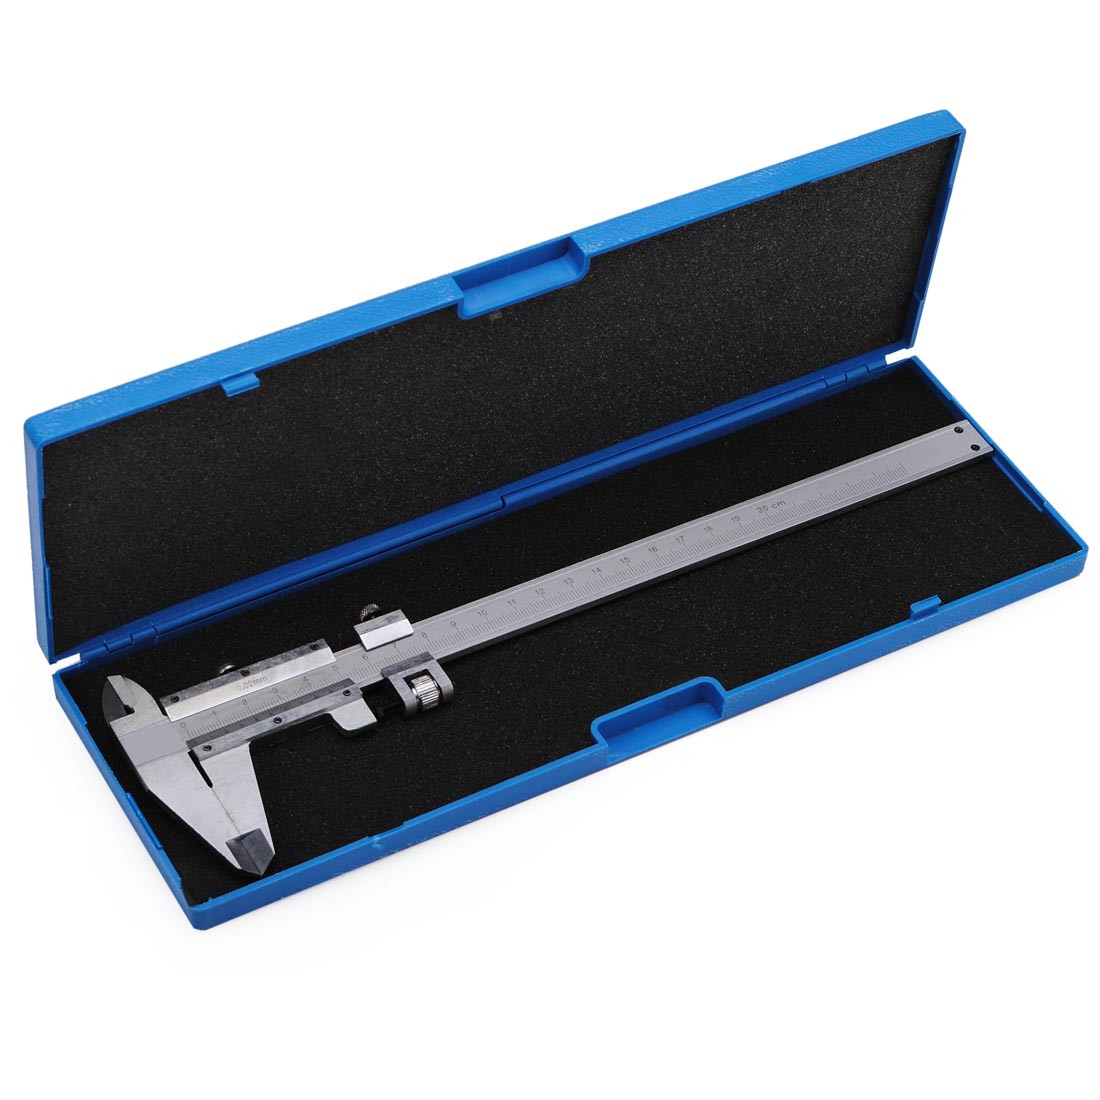 Vernier Caliper 0-150mm 0.02mm Metal Precise Calipers Gauge Professional Micrometer Measuring Tools Stainless Steel professional customized precise